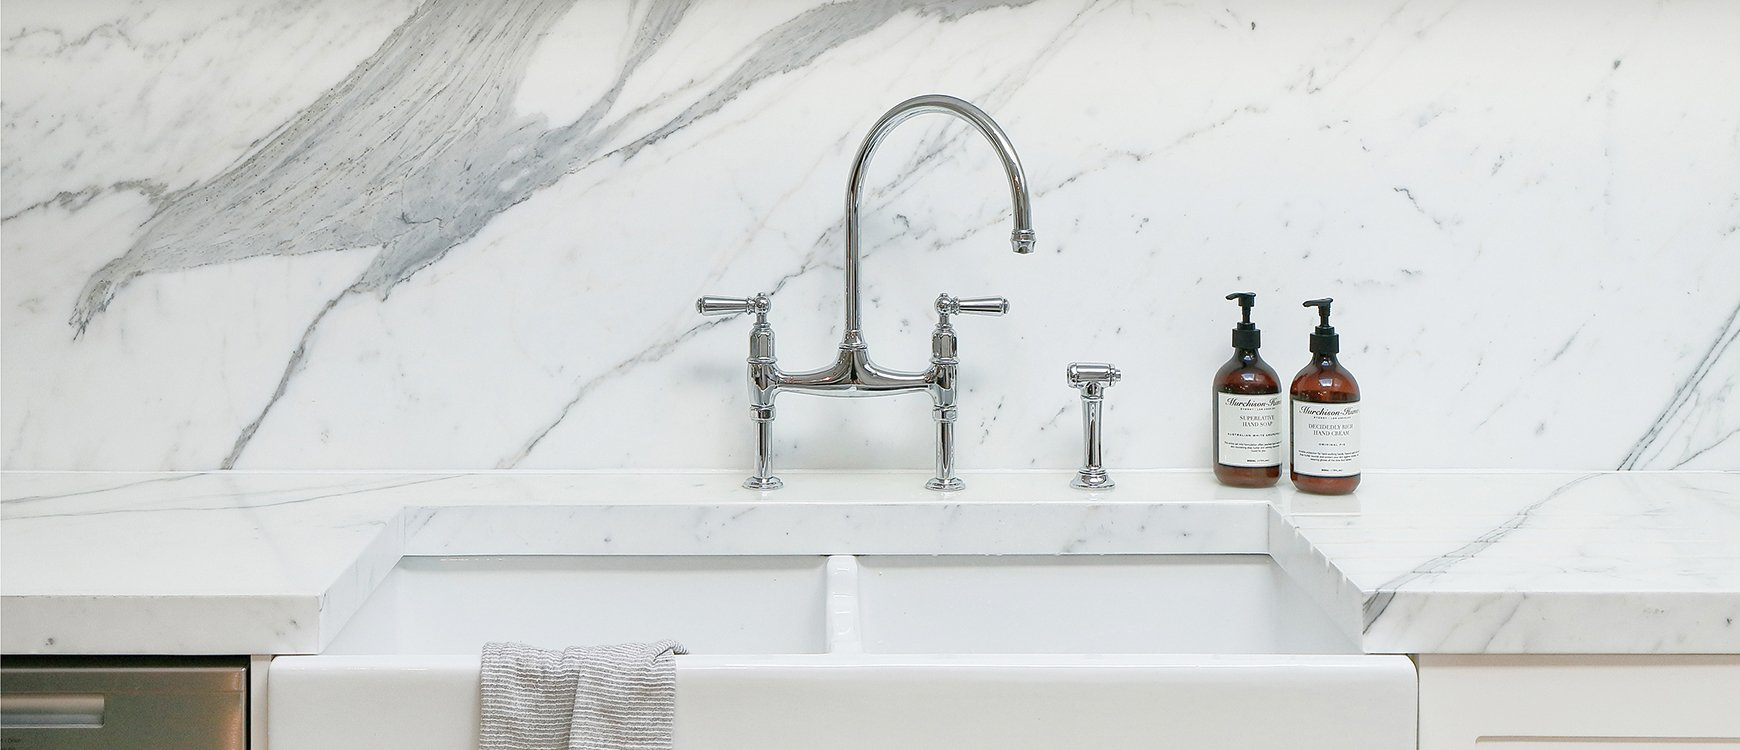 Rohl Perrin and Rowe Bridge Ionian Kitchen Faucet w/ Side Spray U ...